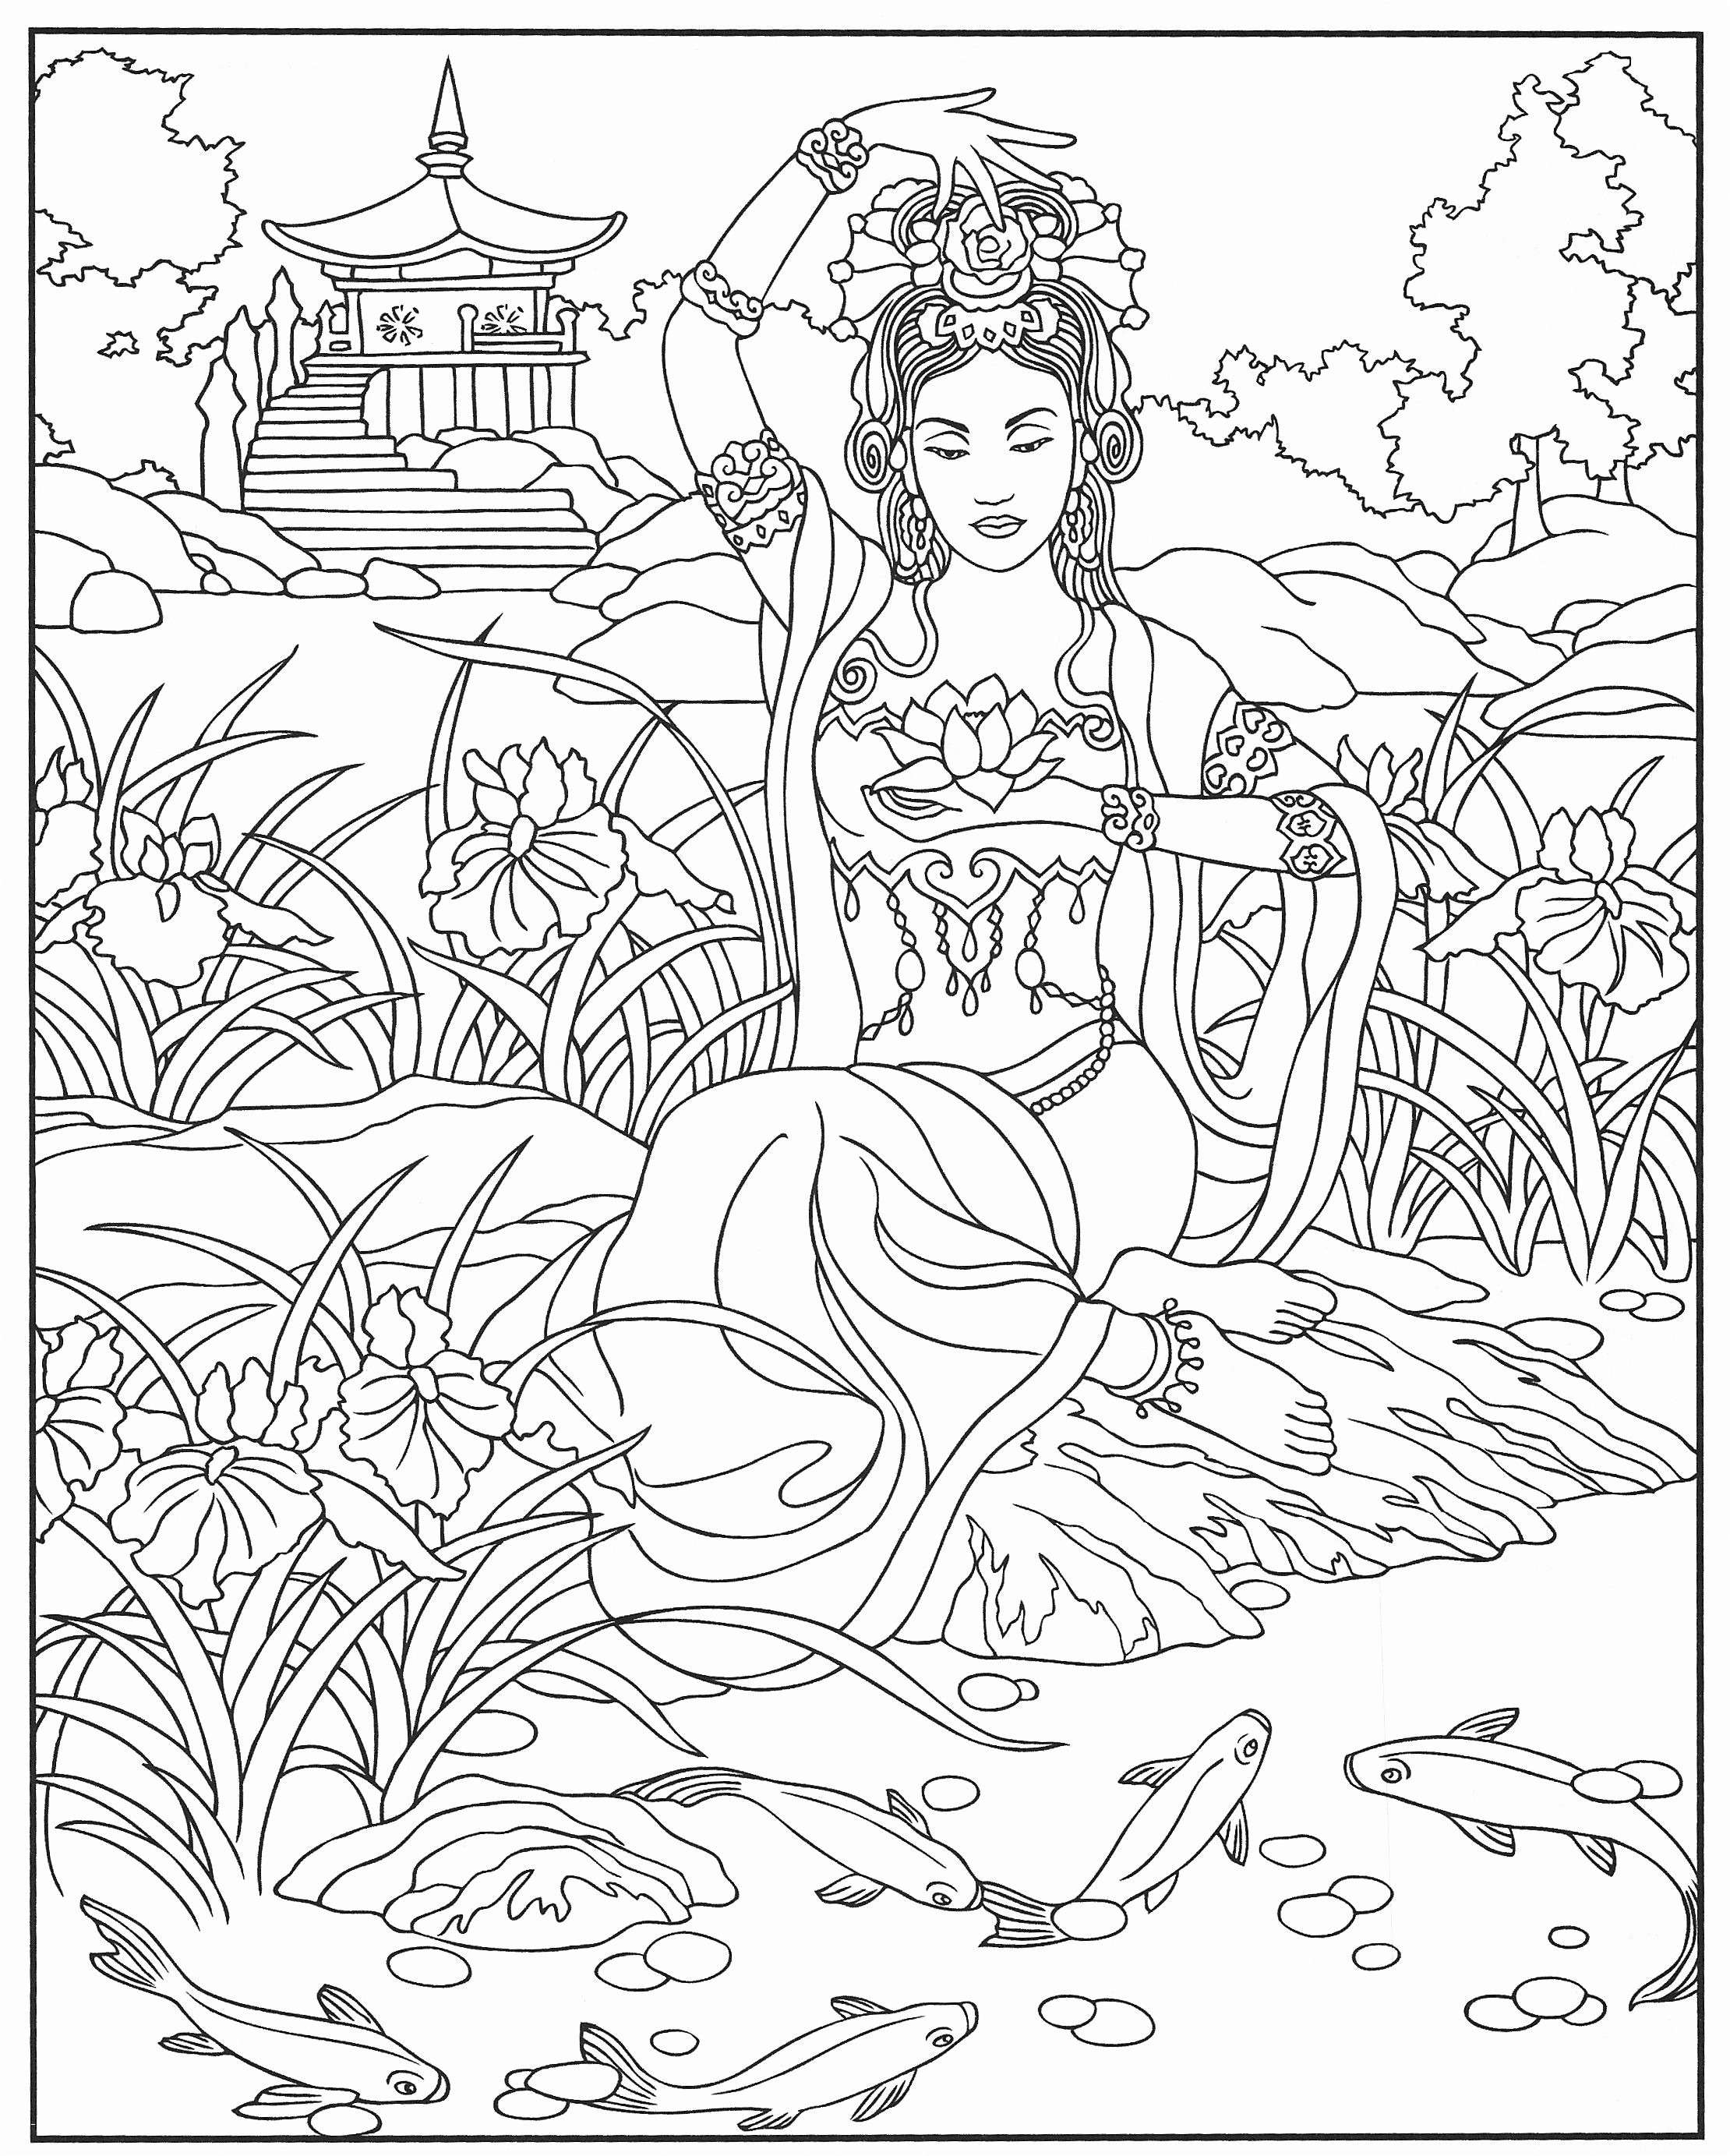 American Girl Dolls Coloring Pages  Gallery 15s - Save it to your computer